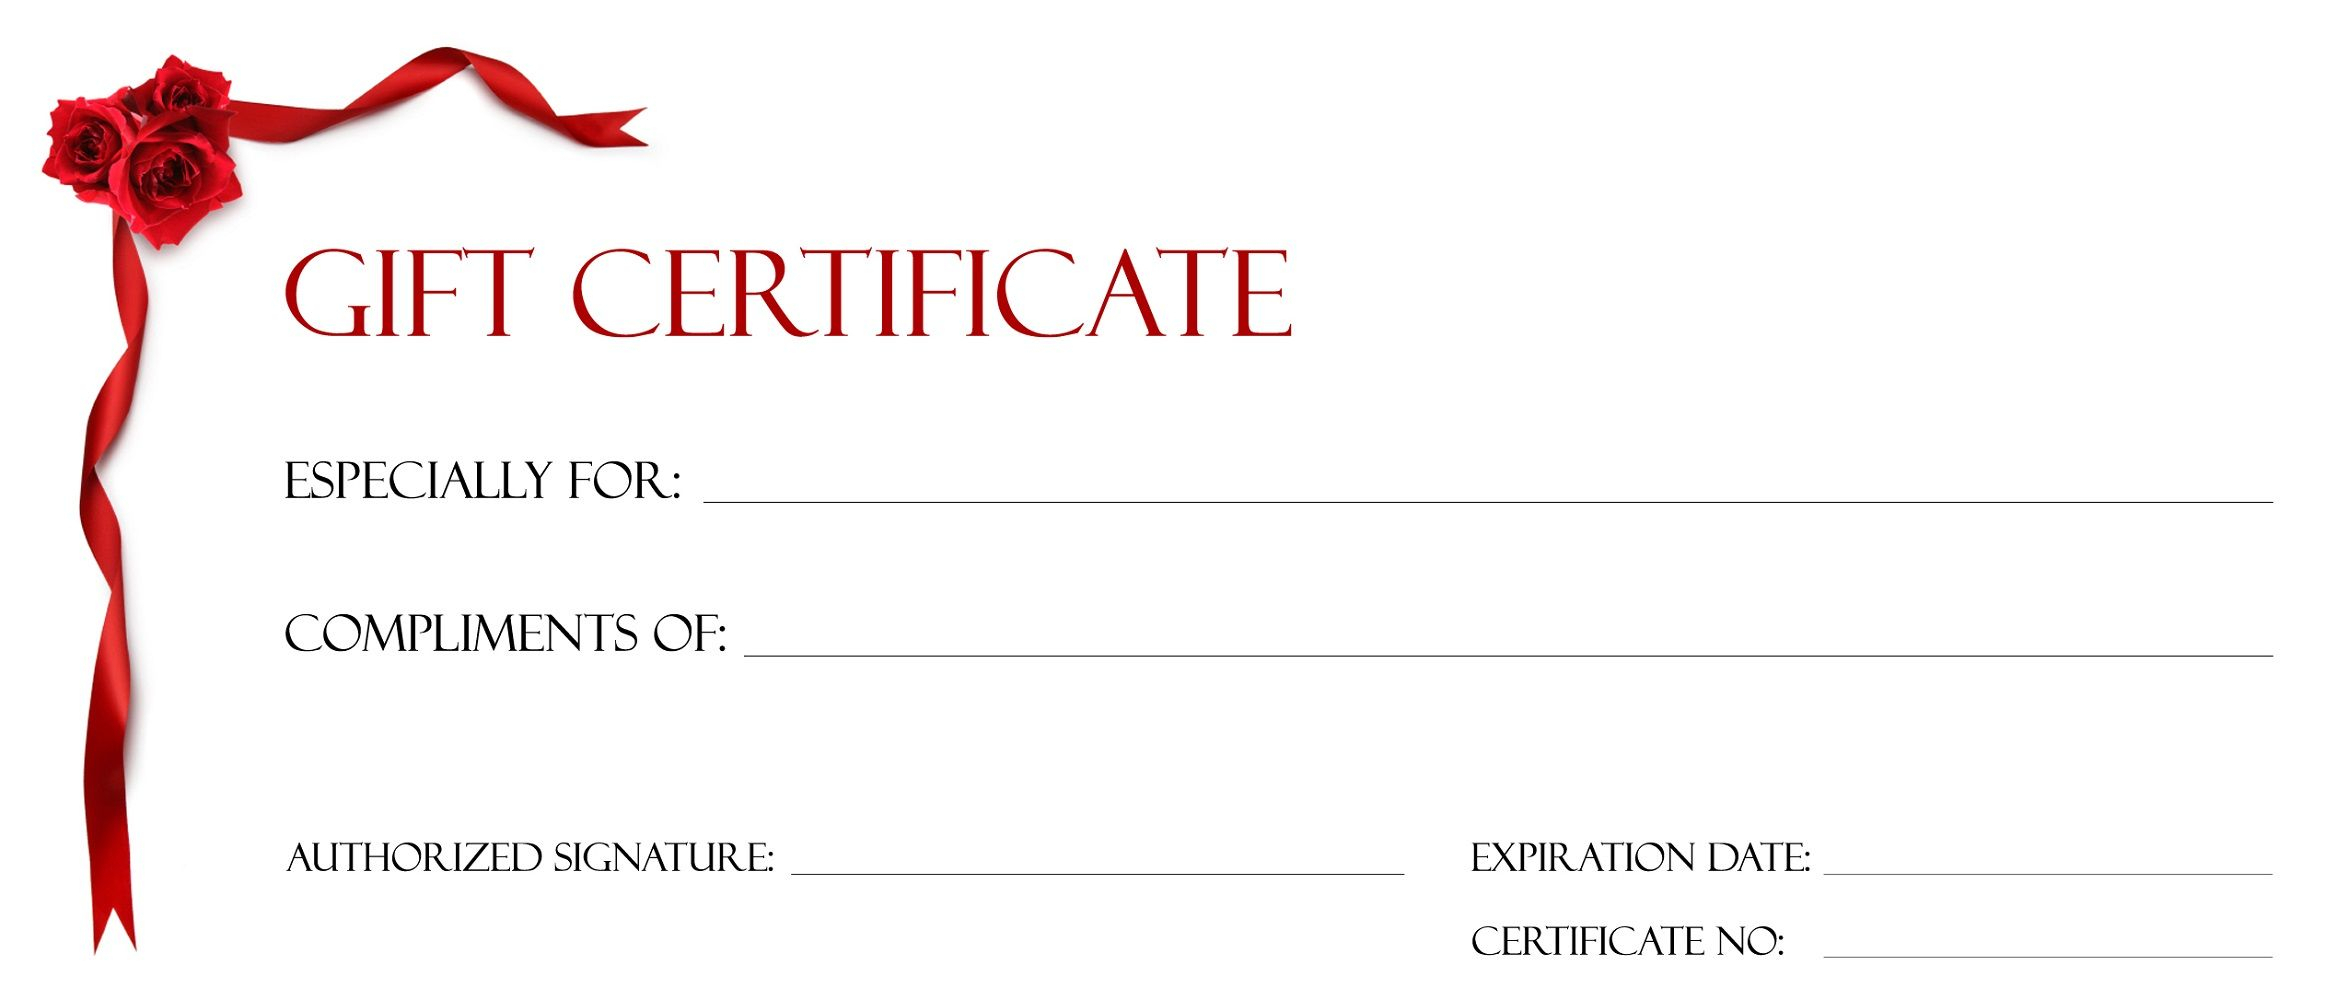 Gift Certificate Templates To Print   Gift Cards Template Within Printable Gift Certificates Templates Free